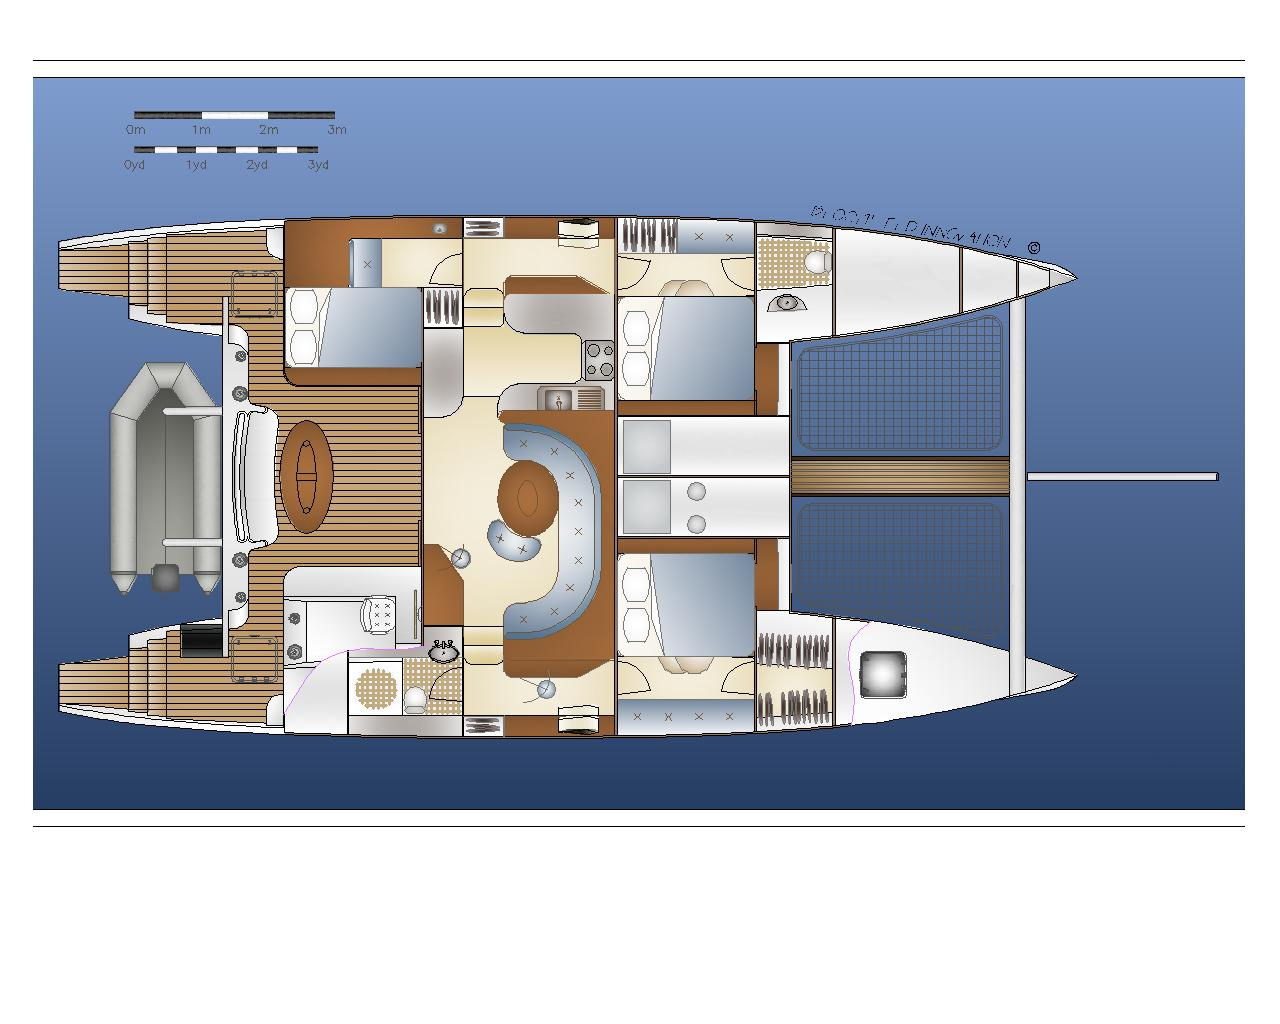 Don't Spend Your Money on Catamaran Boat Plans | toxovybys